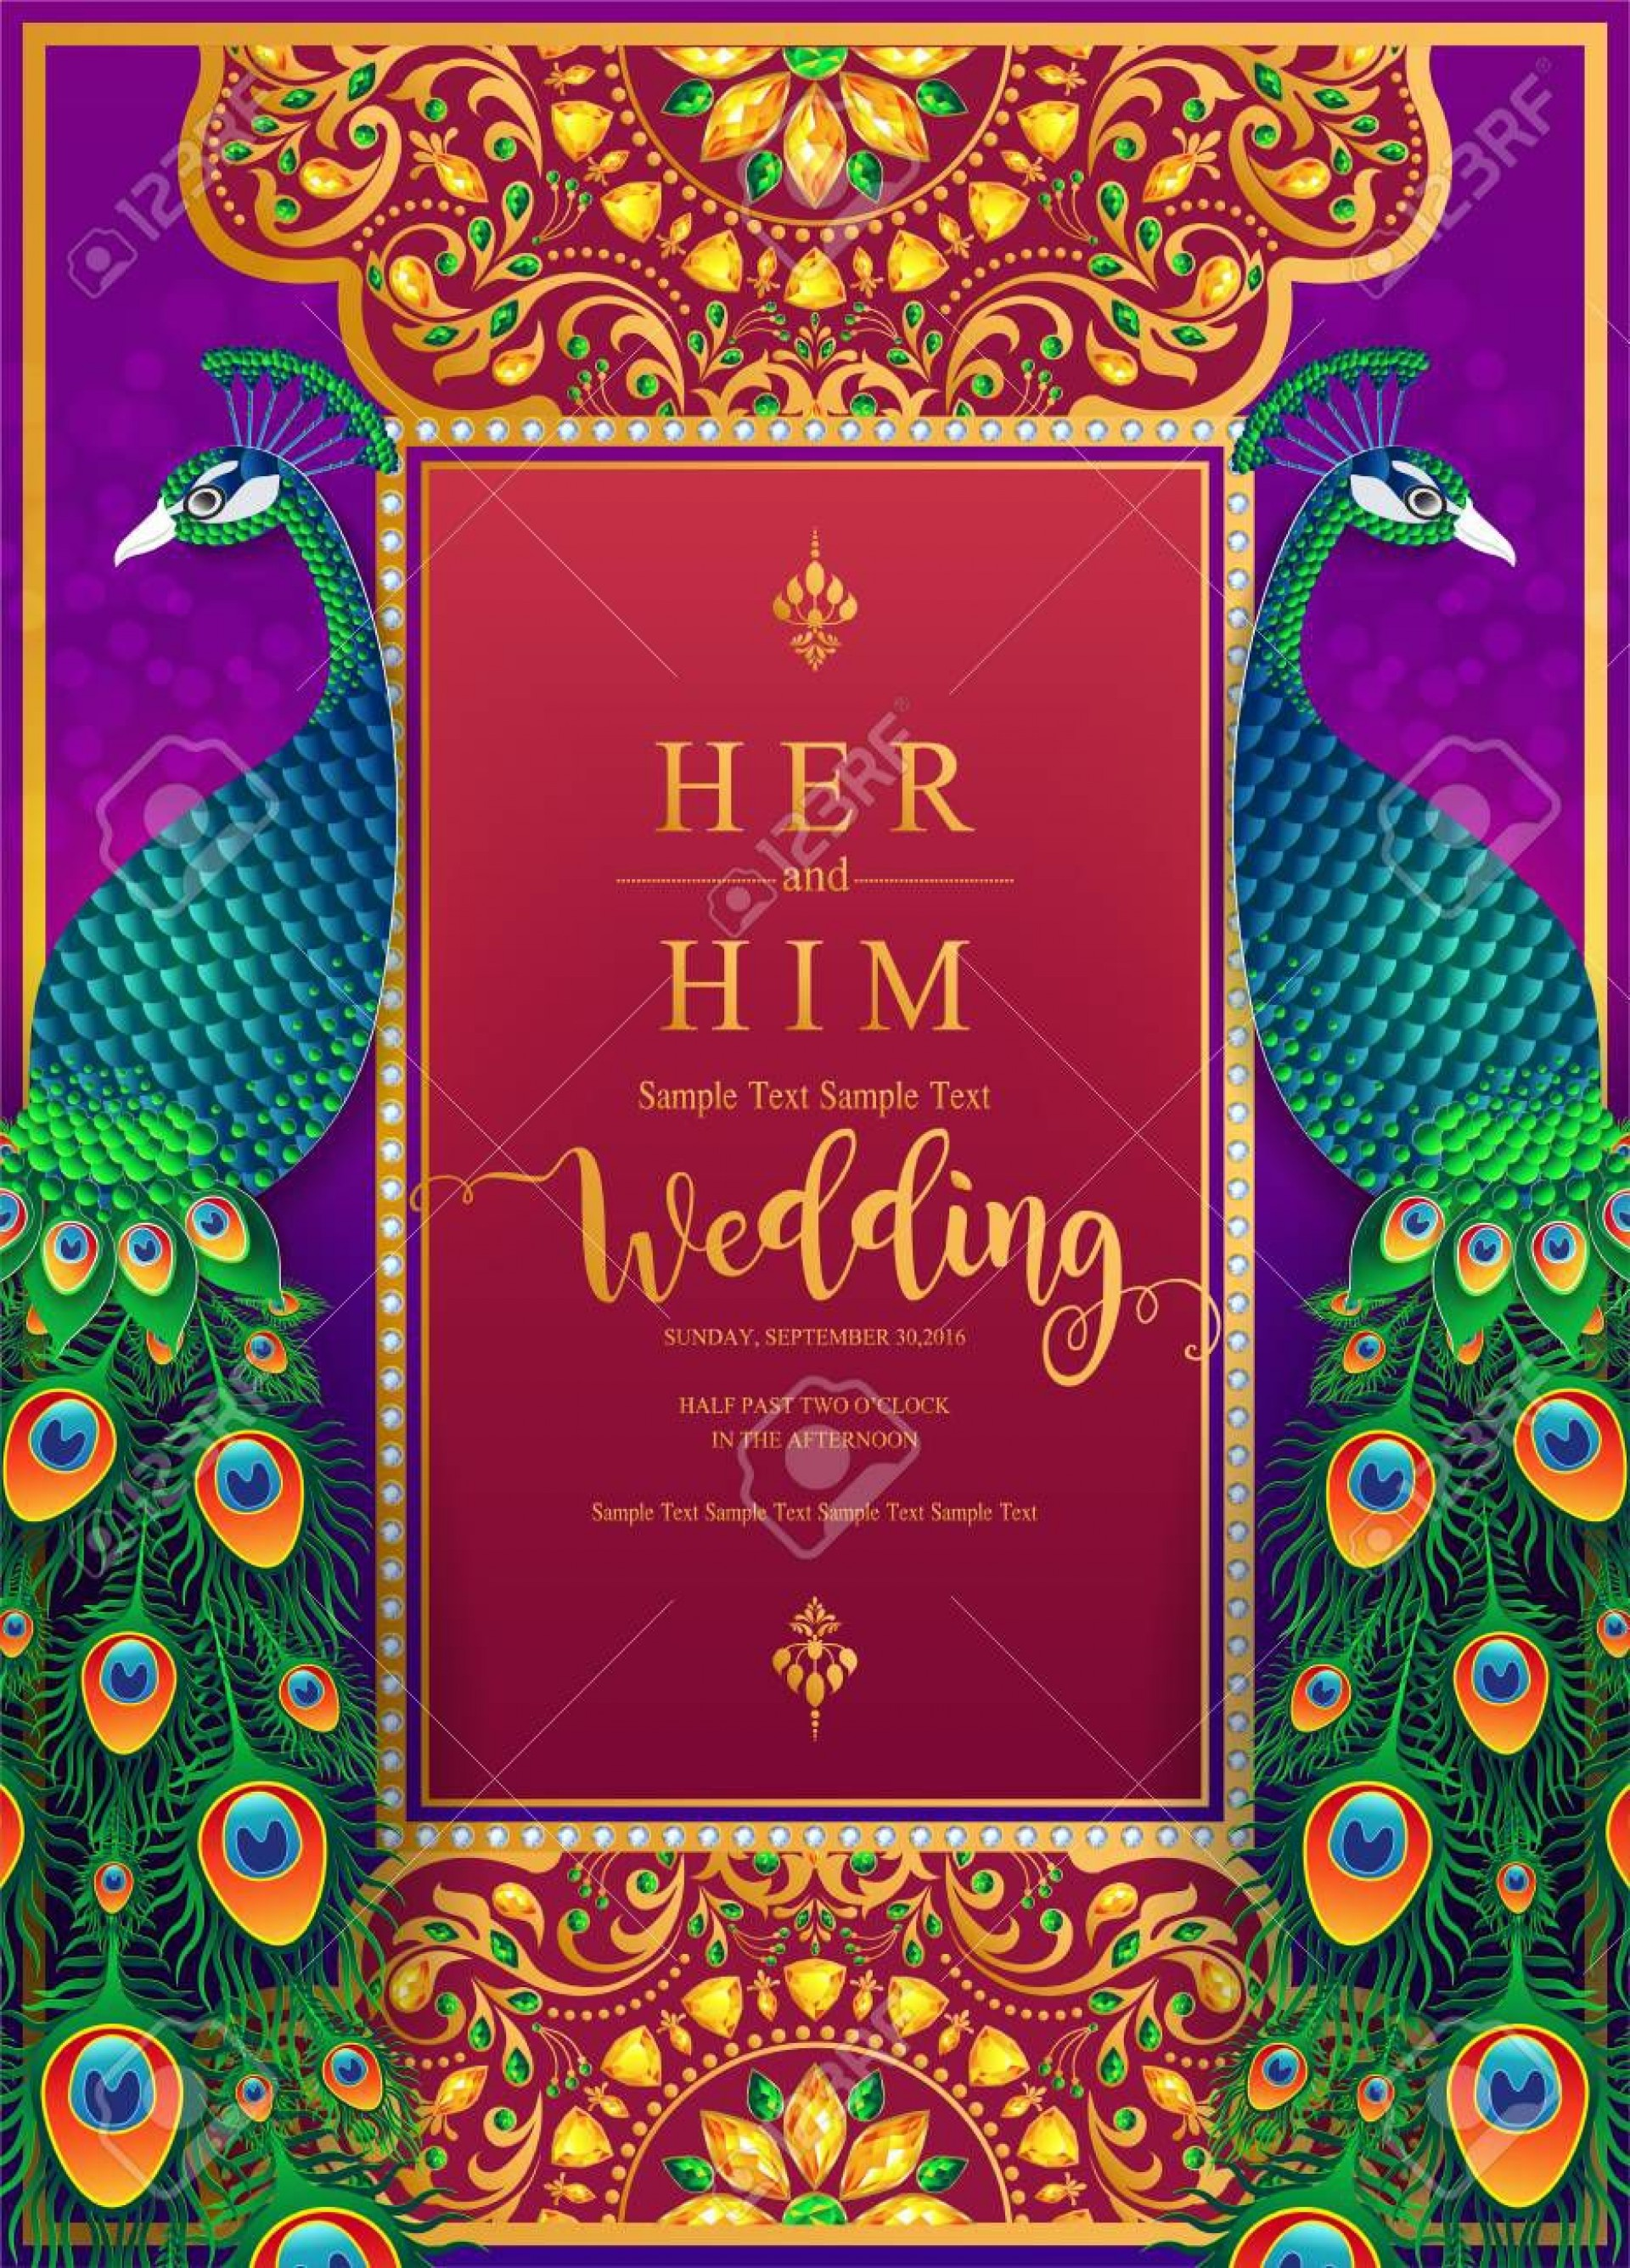 007 Amazing Indian Wedding Invitation Template Picture  Psd Free Download Marriage Online For Friend1920